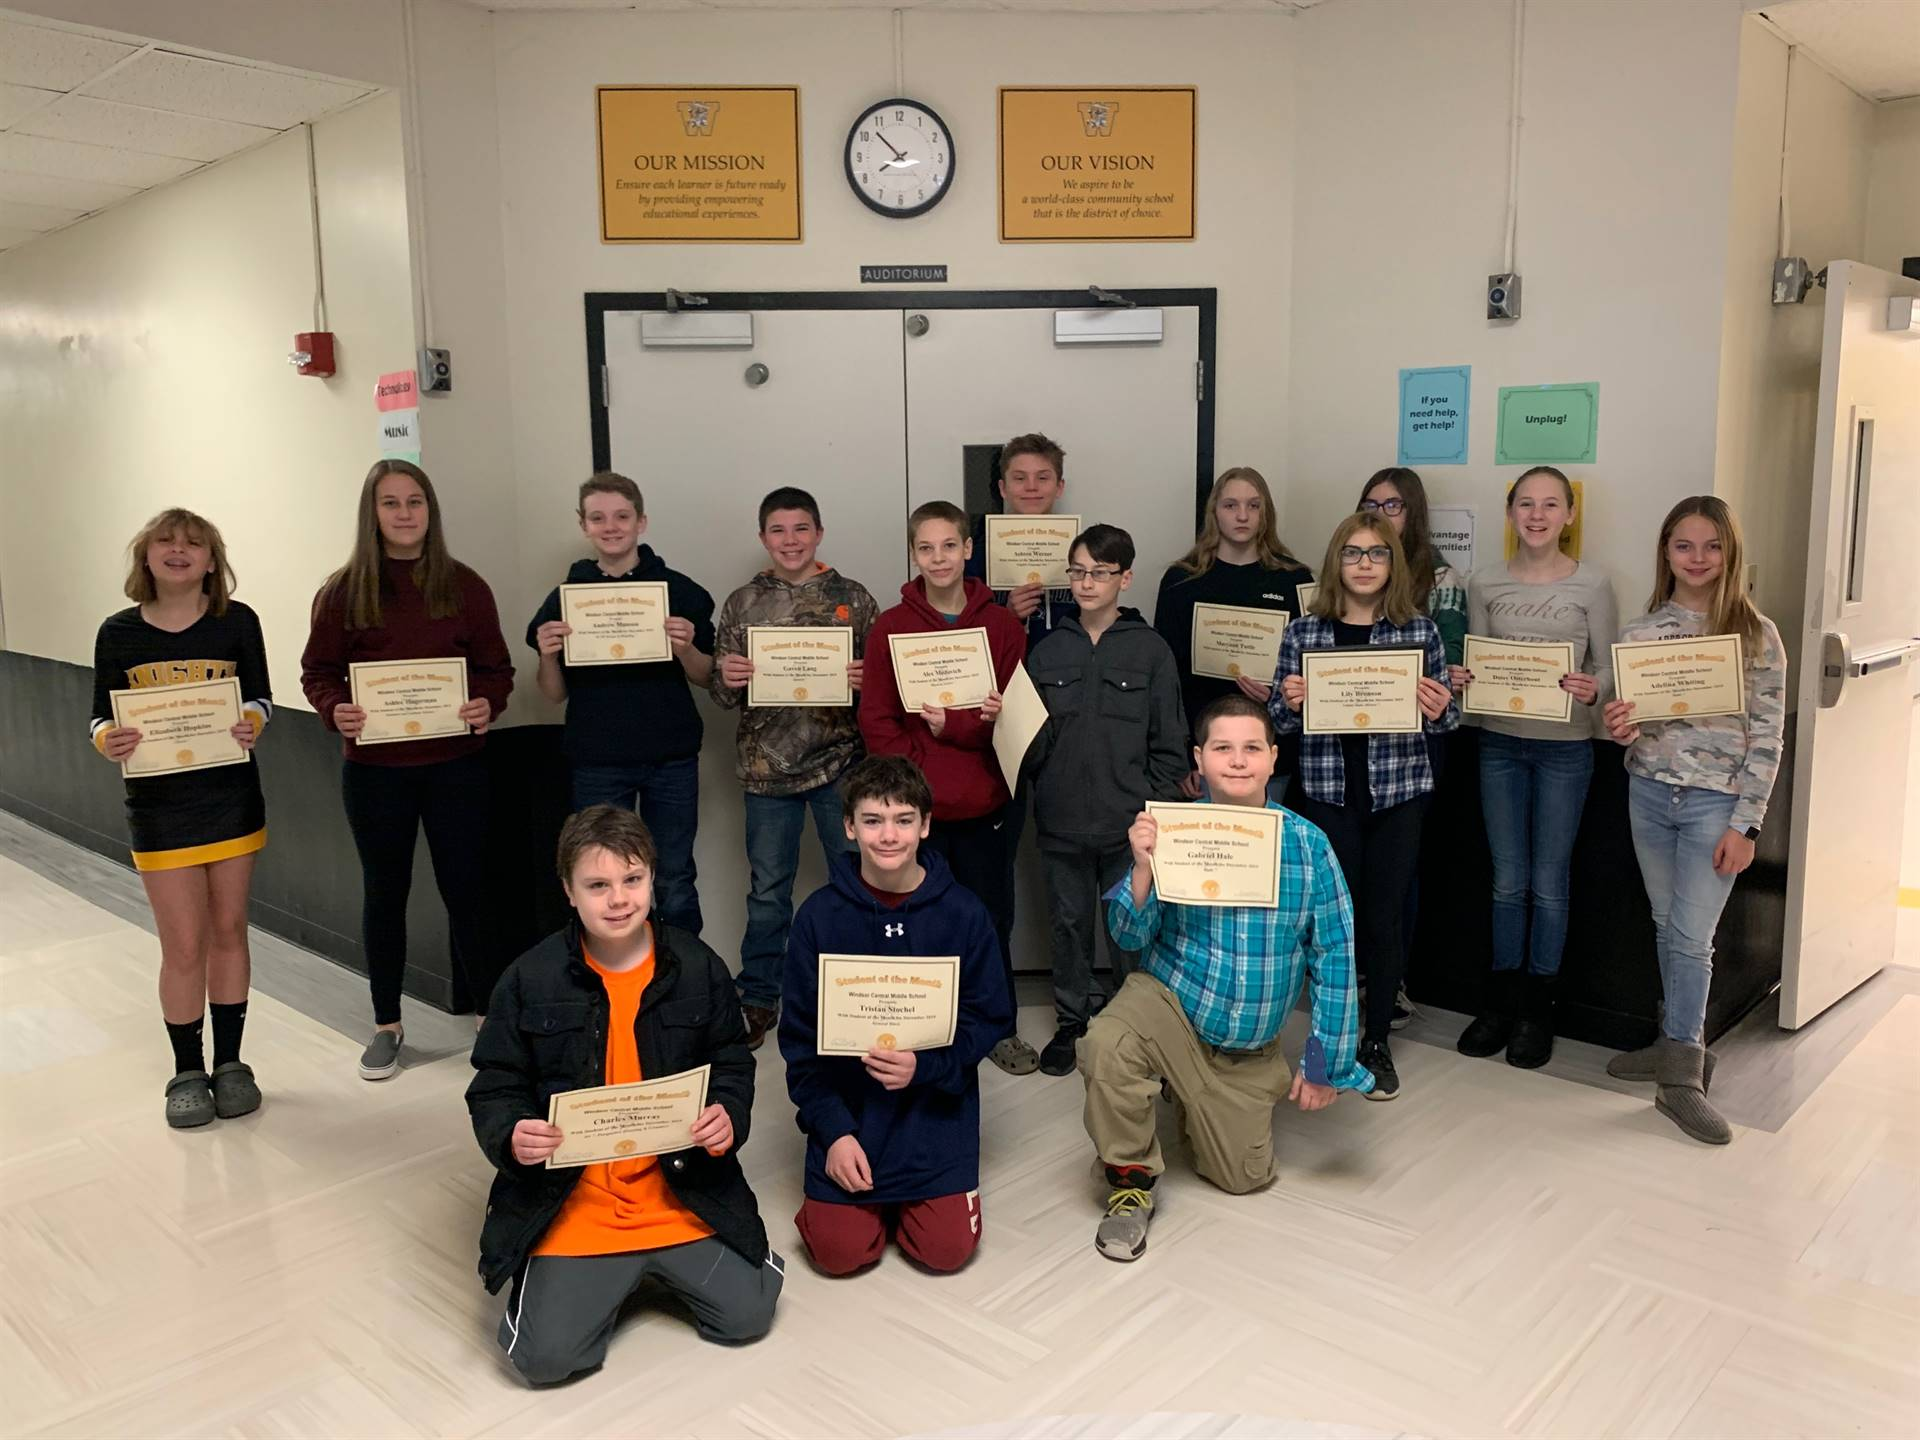 Two rows of young students holding certificates